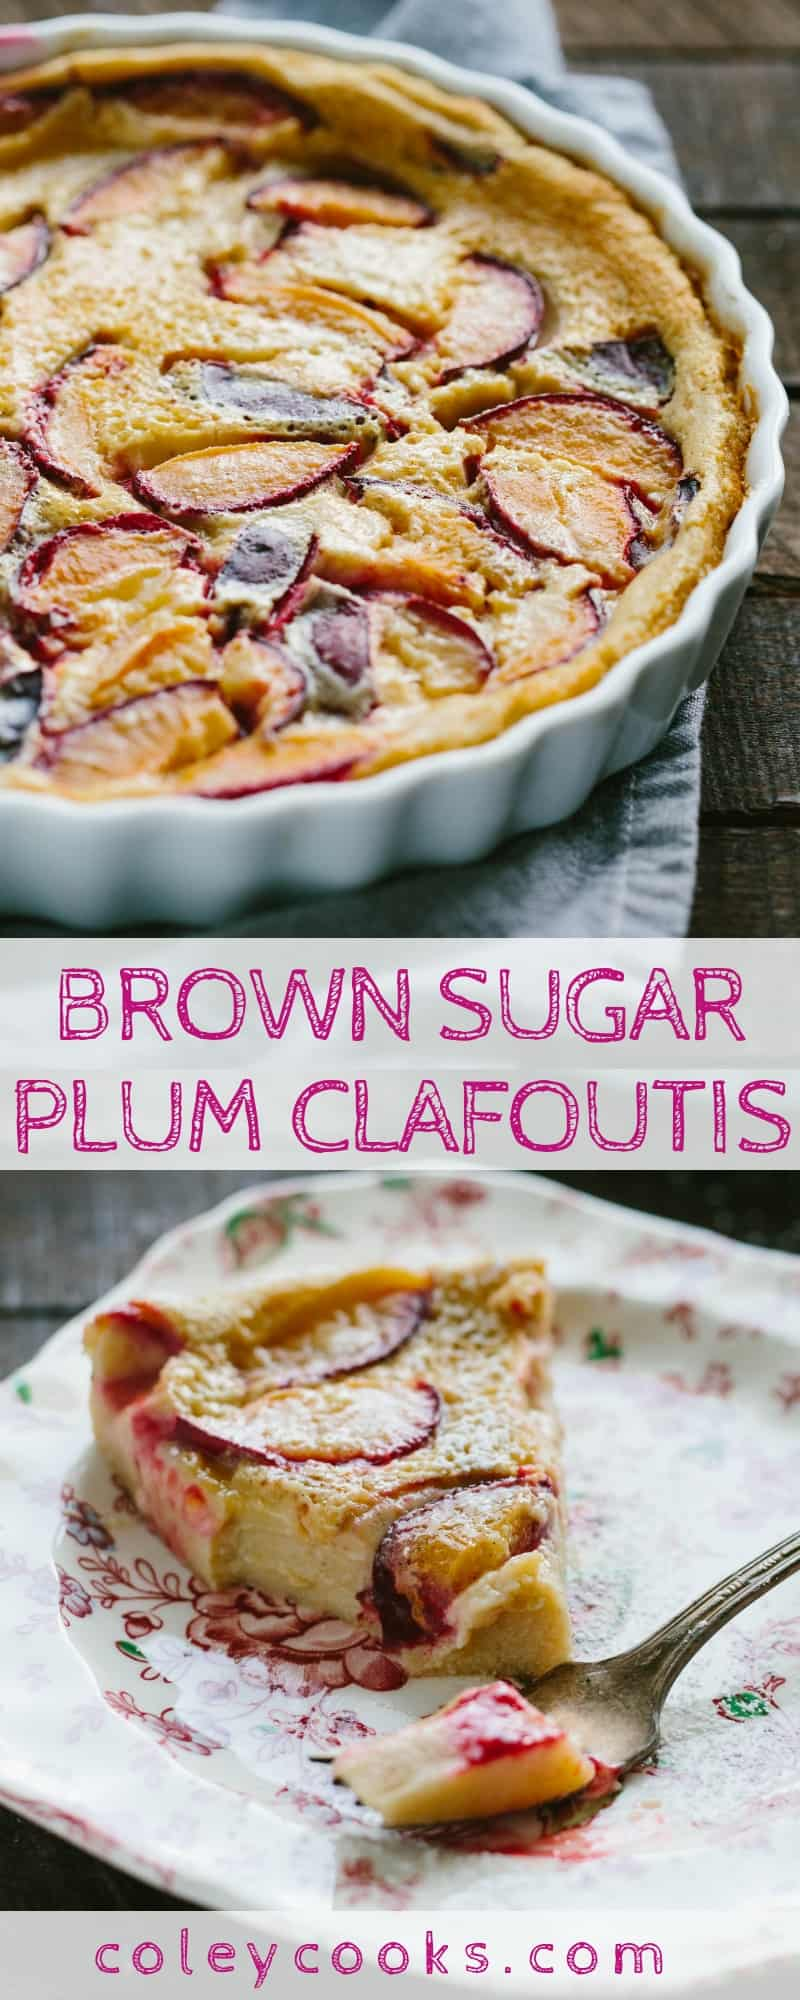 BROWN SUGAR PLUM CLAFOUTIS | This easy and elegant classic French dessert is silky, custardy, and full of juicy fresh plums. #french #dessert #easy #fruit #custard #elegant #egg #clafoutis #plums #recipe | ColeyCooks.com